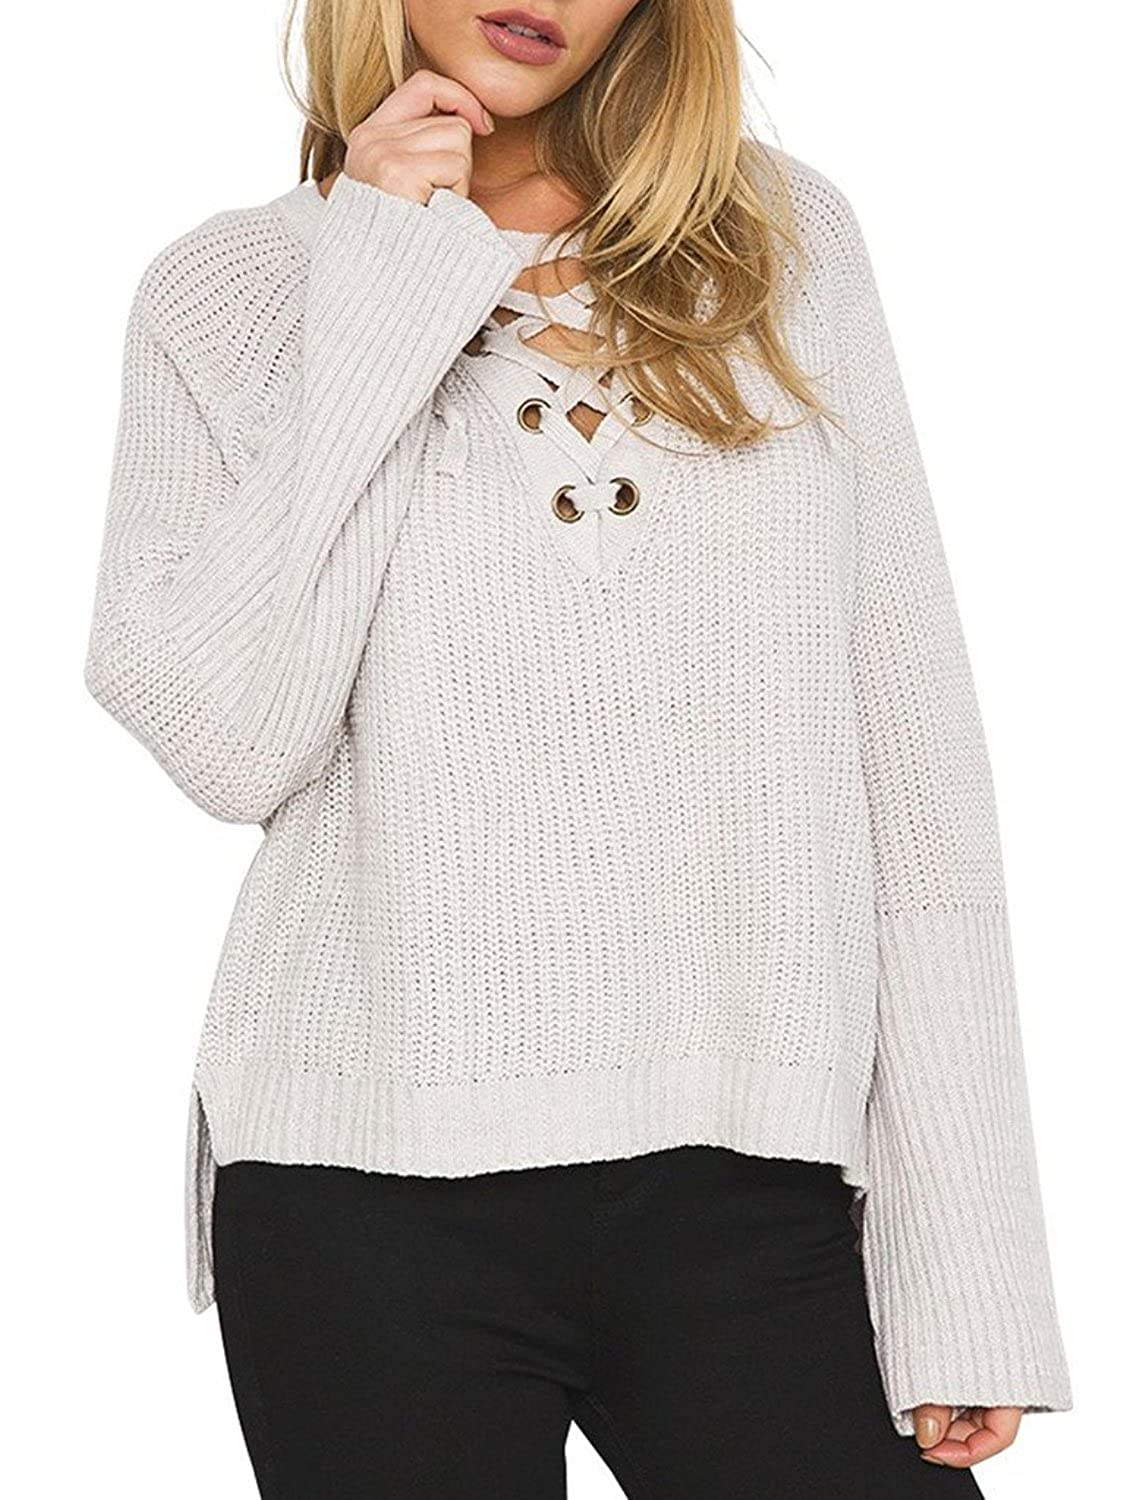 Voguegirl Women Lace Up V Neck Flare Sleeve Knitted High Low Sweater